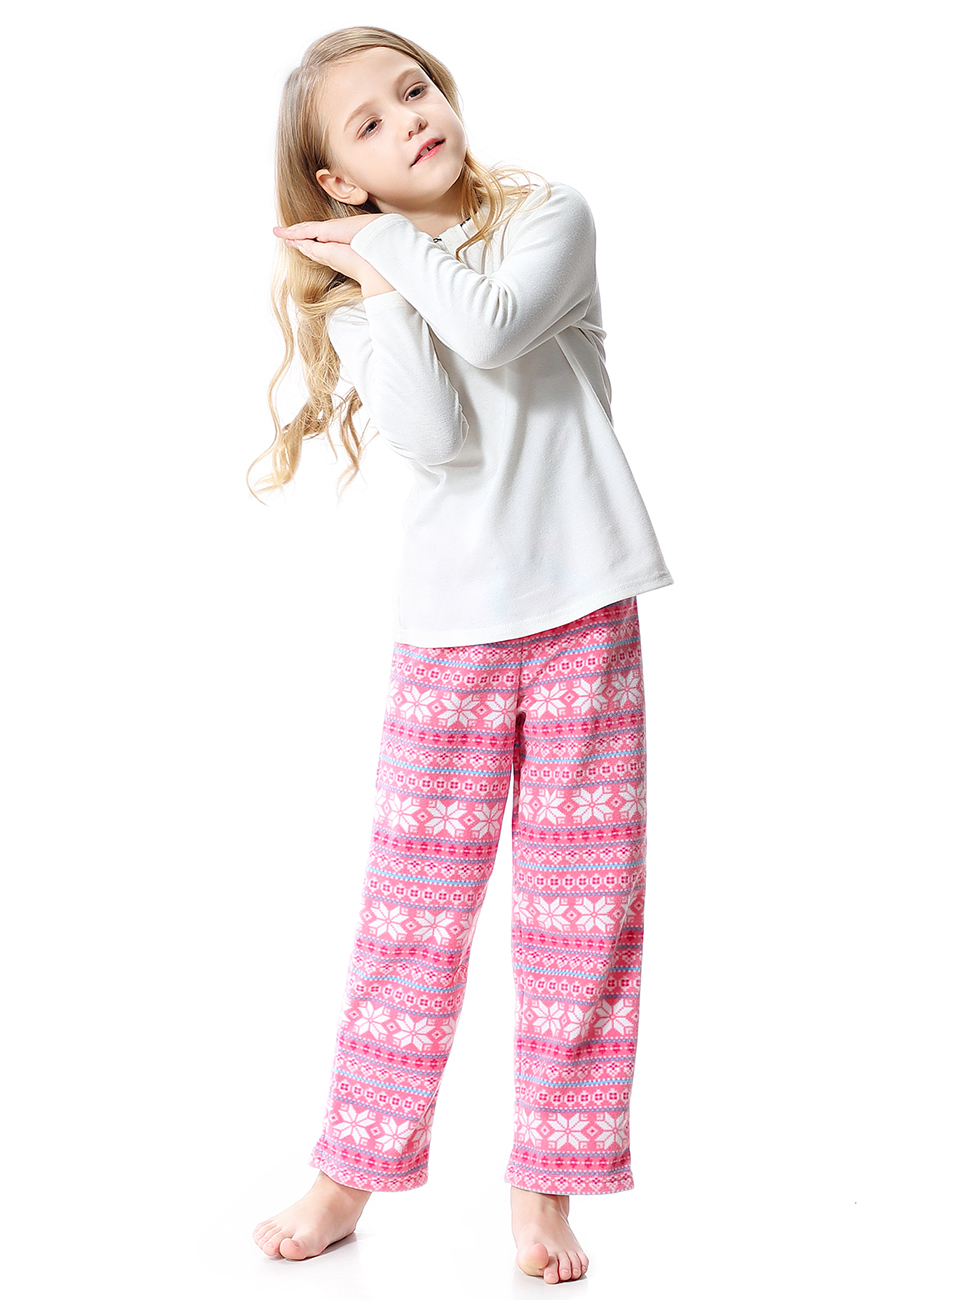 OLEH-OLEH Little Kid and Toddler Boy/'s Pajama Pants Soft Casual Loose Fleece Lounge Bottoms